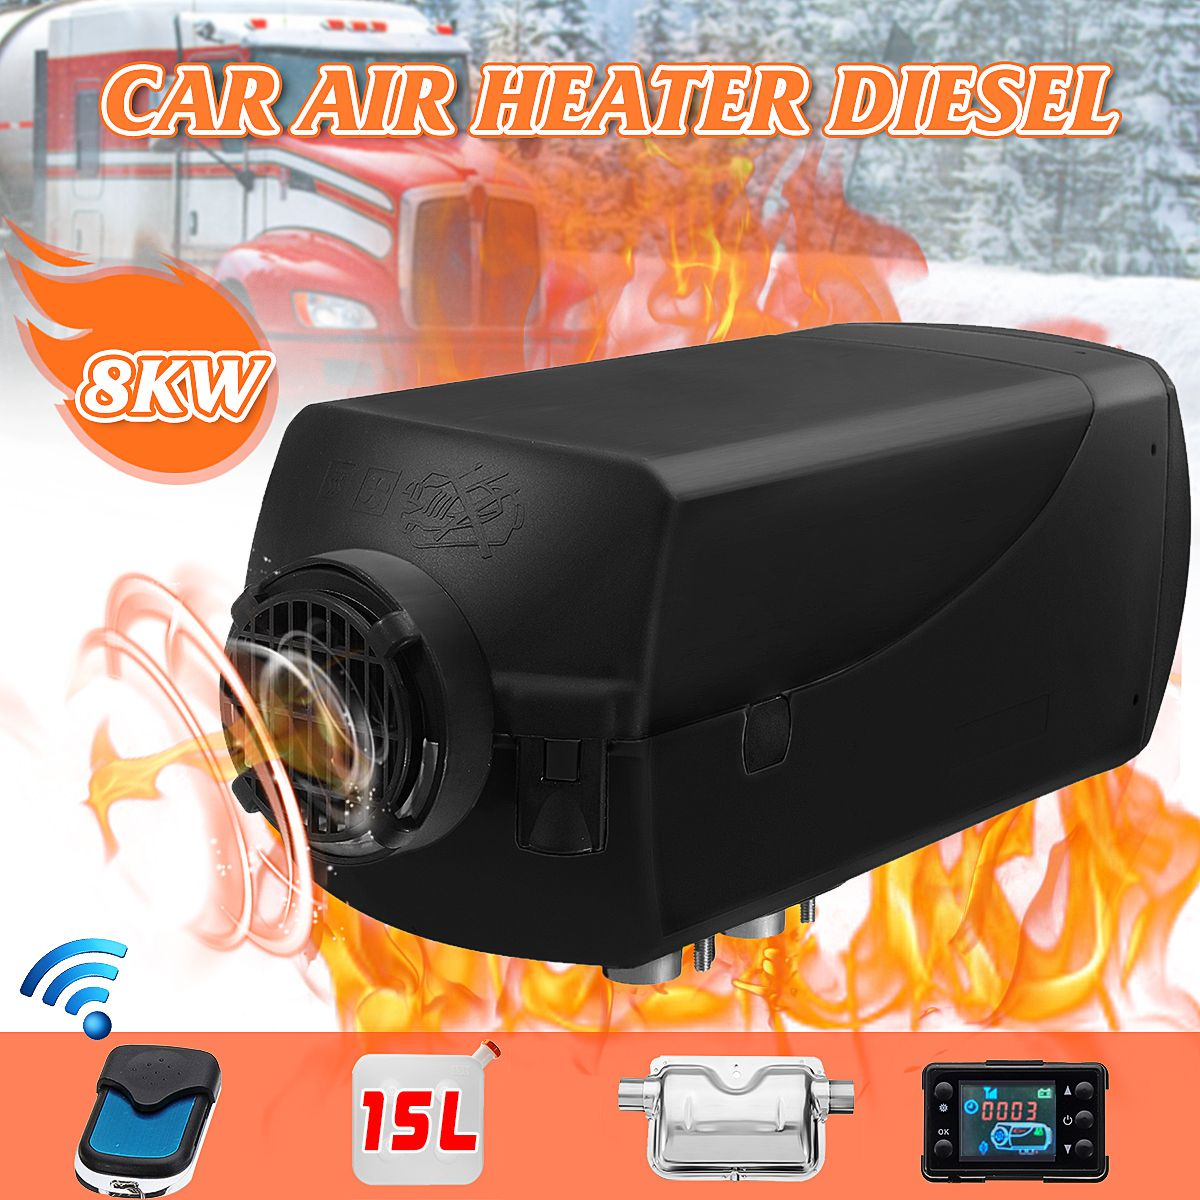 Car Air Heater 12V 8KW LCD D iesel Silencer 15L Tank Planar Trucks Boat Motorhome Parking With Remote Control LCD Monitor for RV